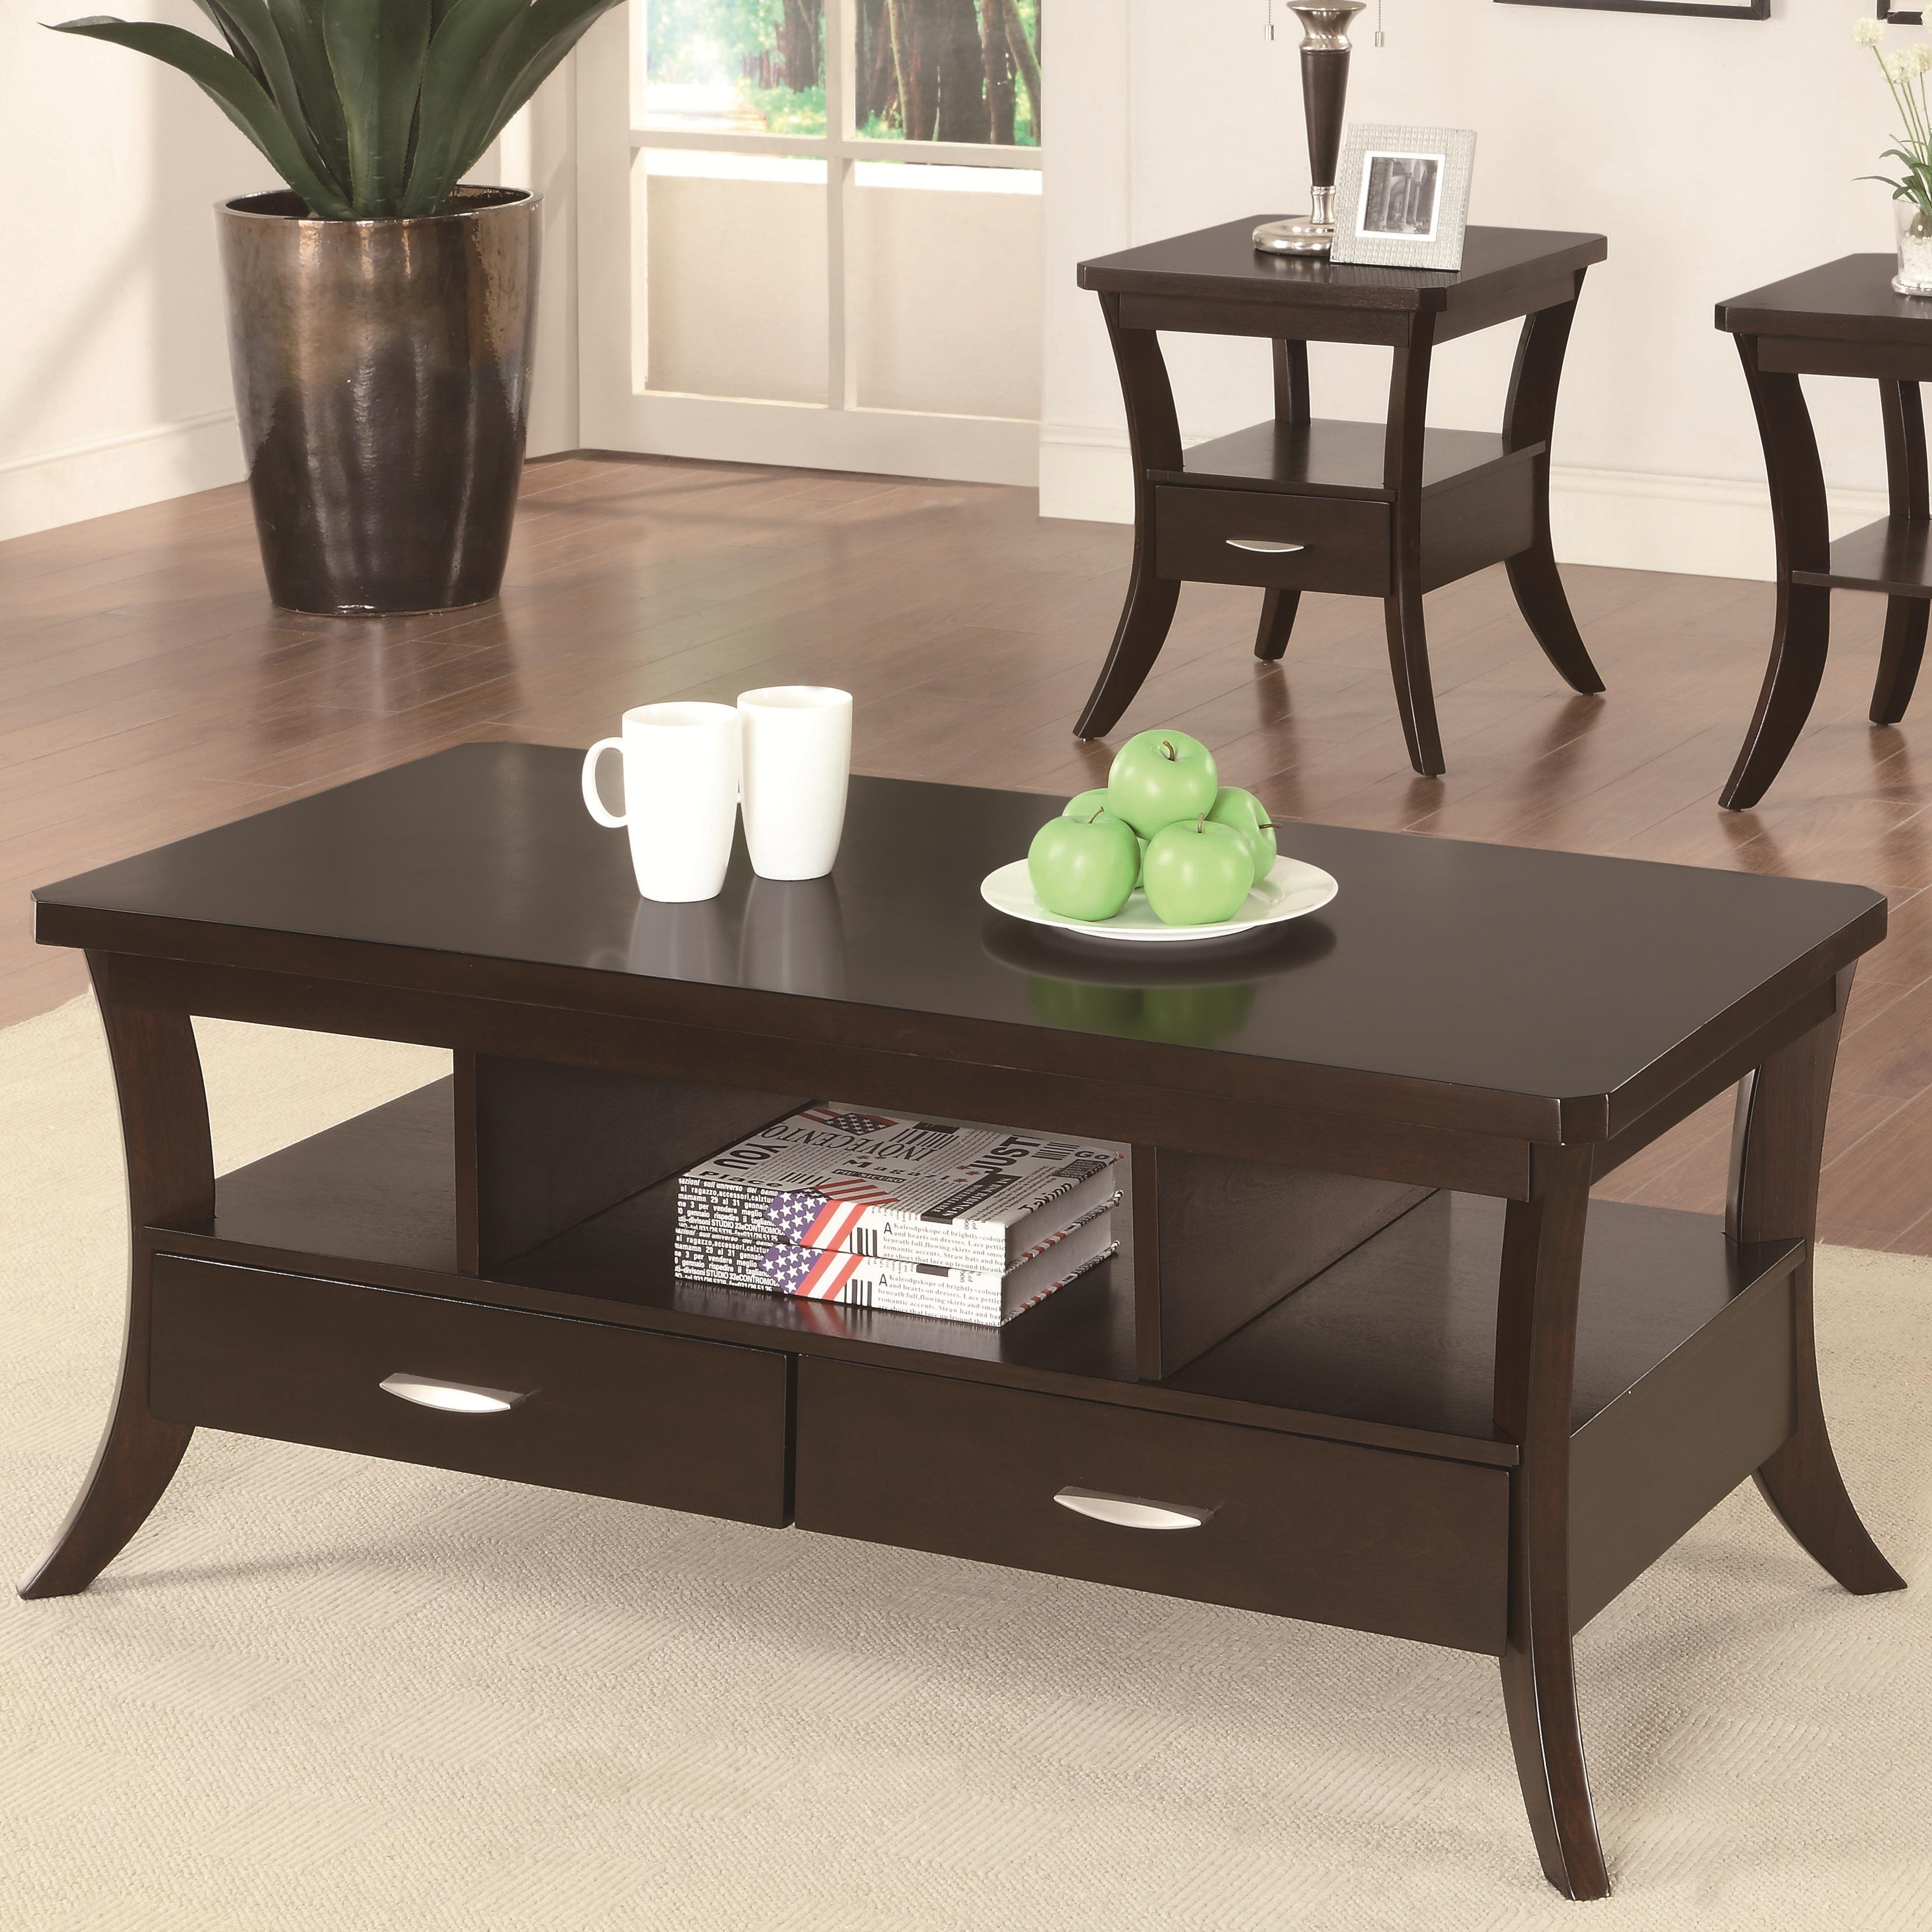 Coaster Occasional Group Coffee Table - Item Number: 702508